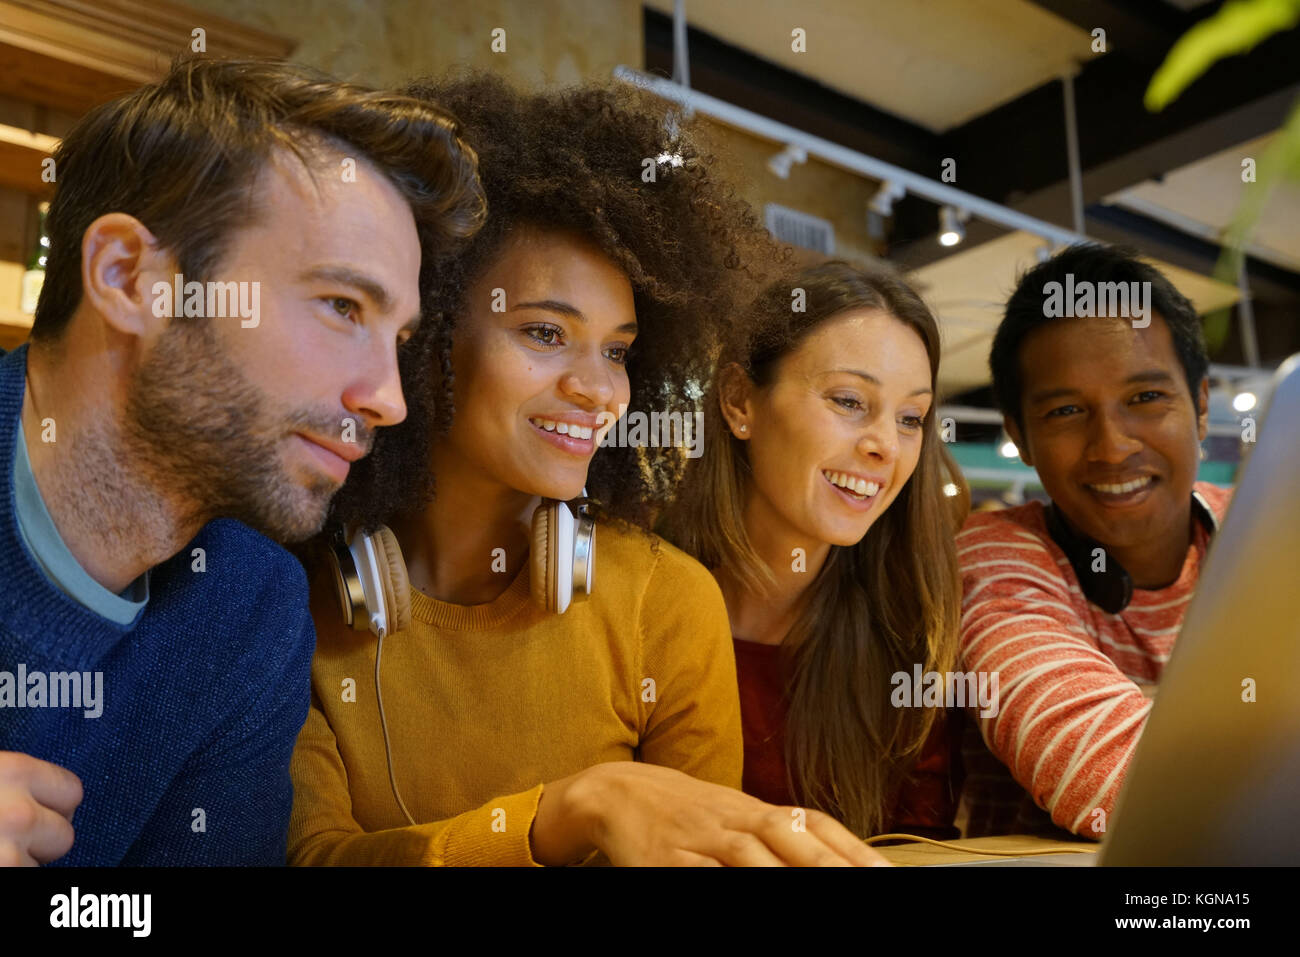 Group of friends websurfing on laptop in coffee shop - Stock Image